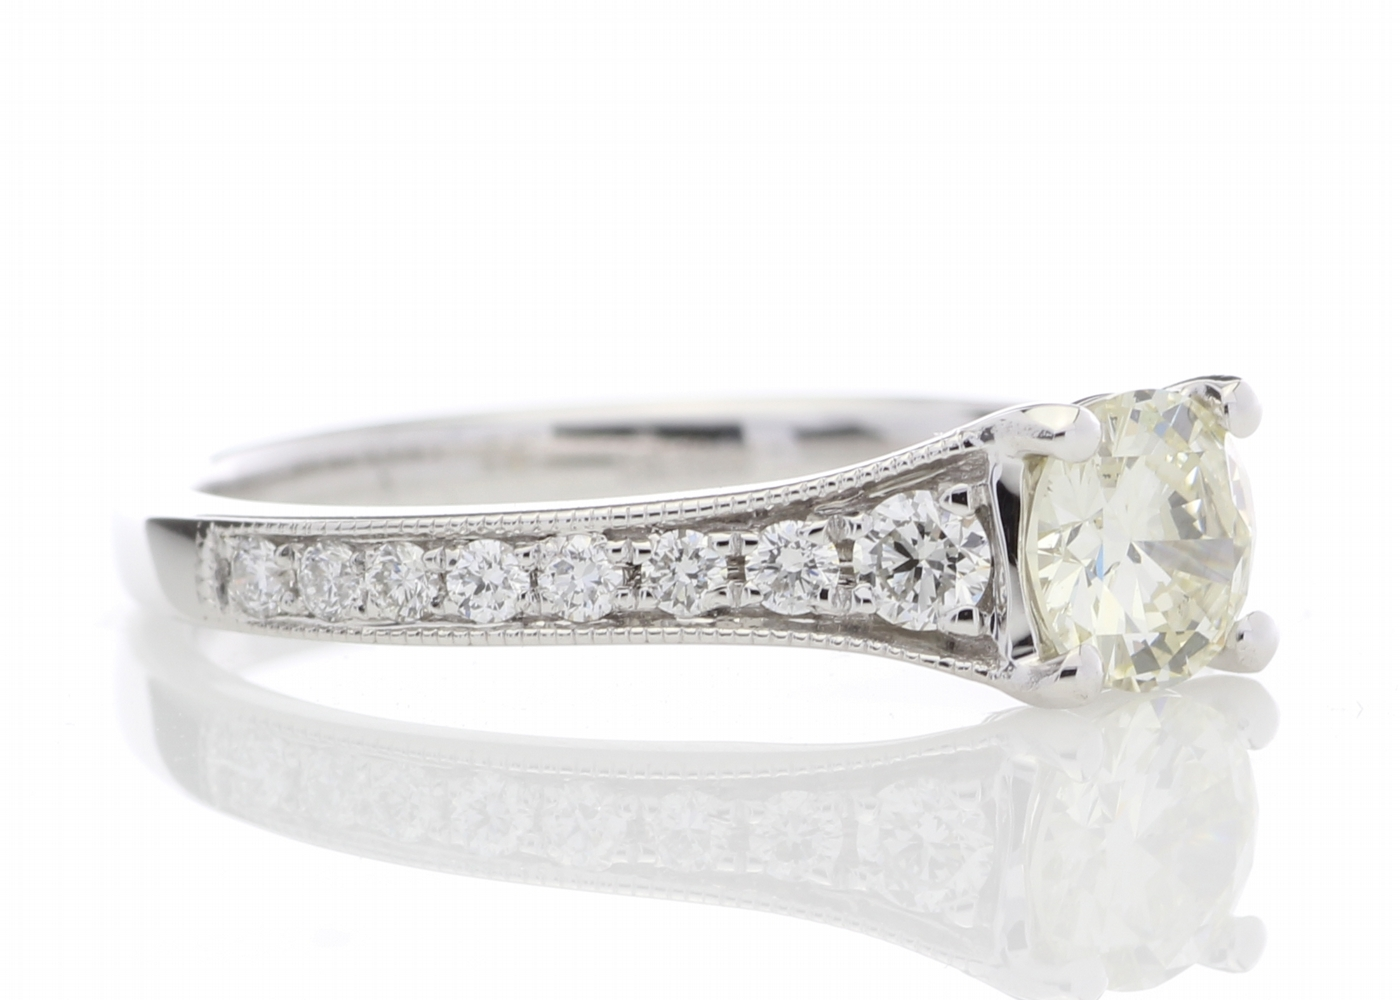 18ct White Gold Diamond Ring With Stone Set Shoulders 0.80 Carats - Image 4 of 5